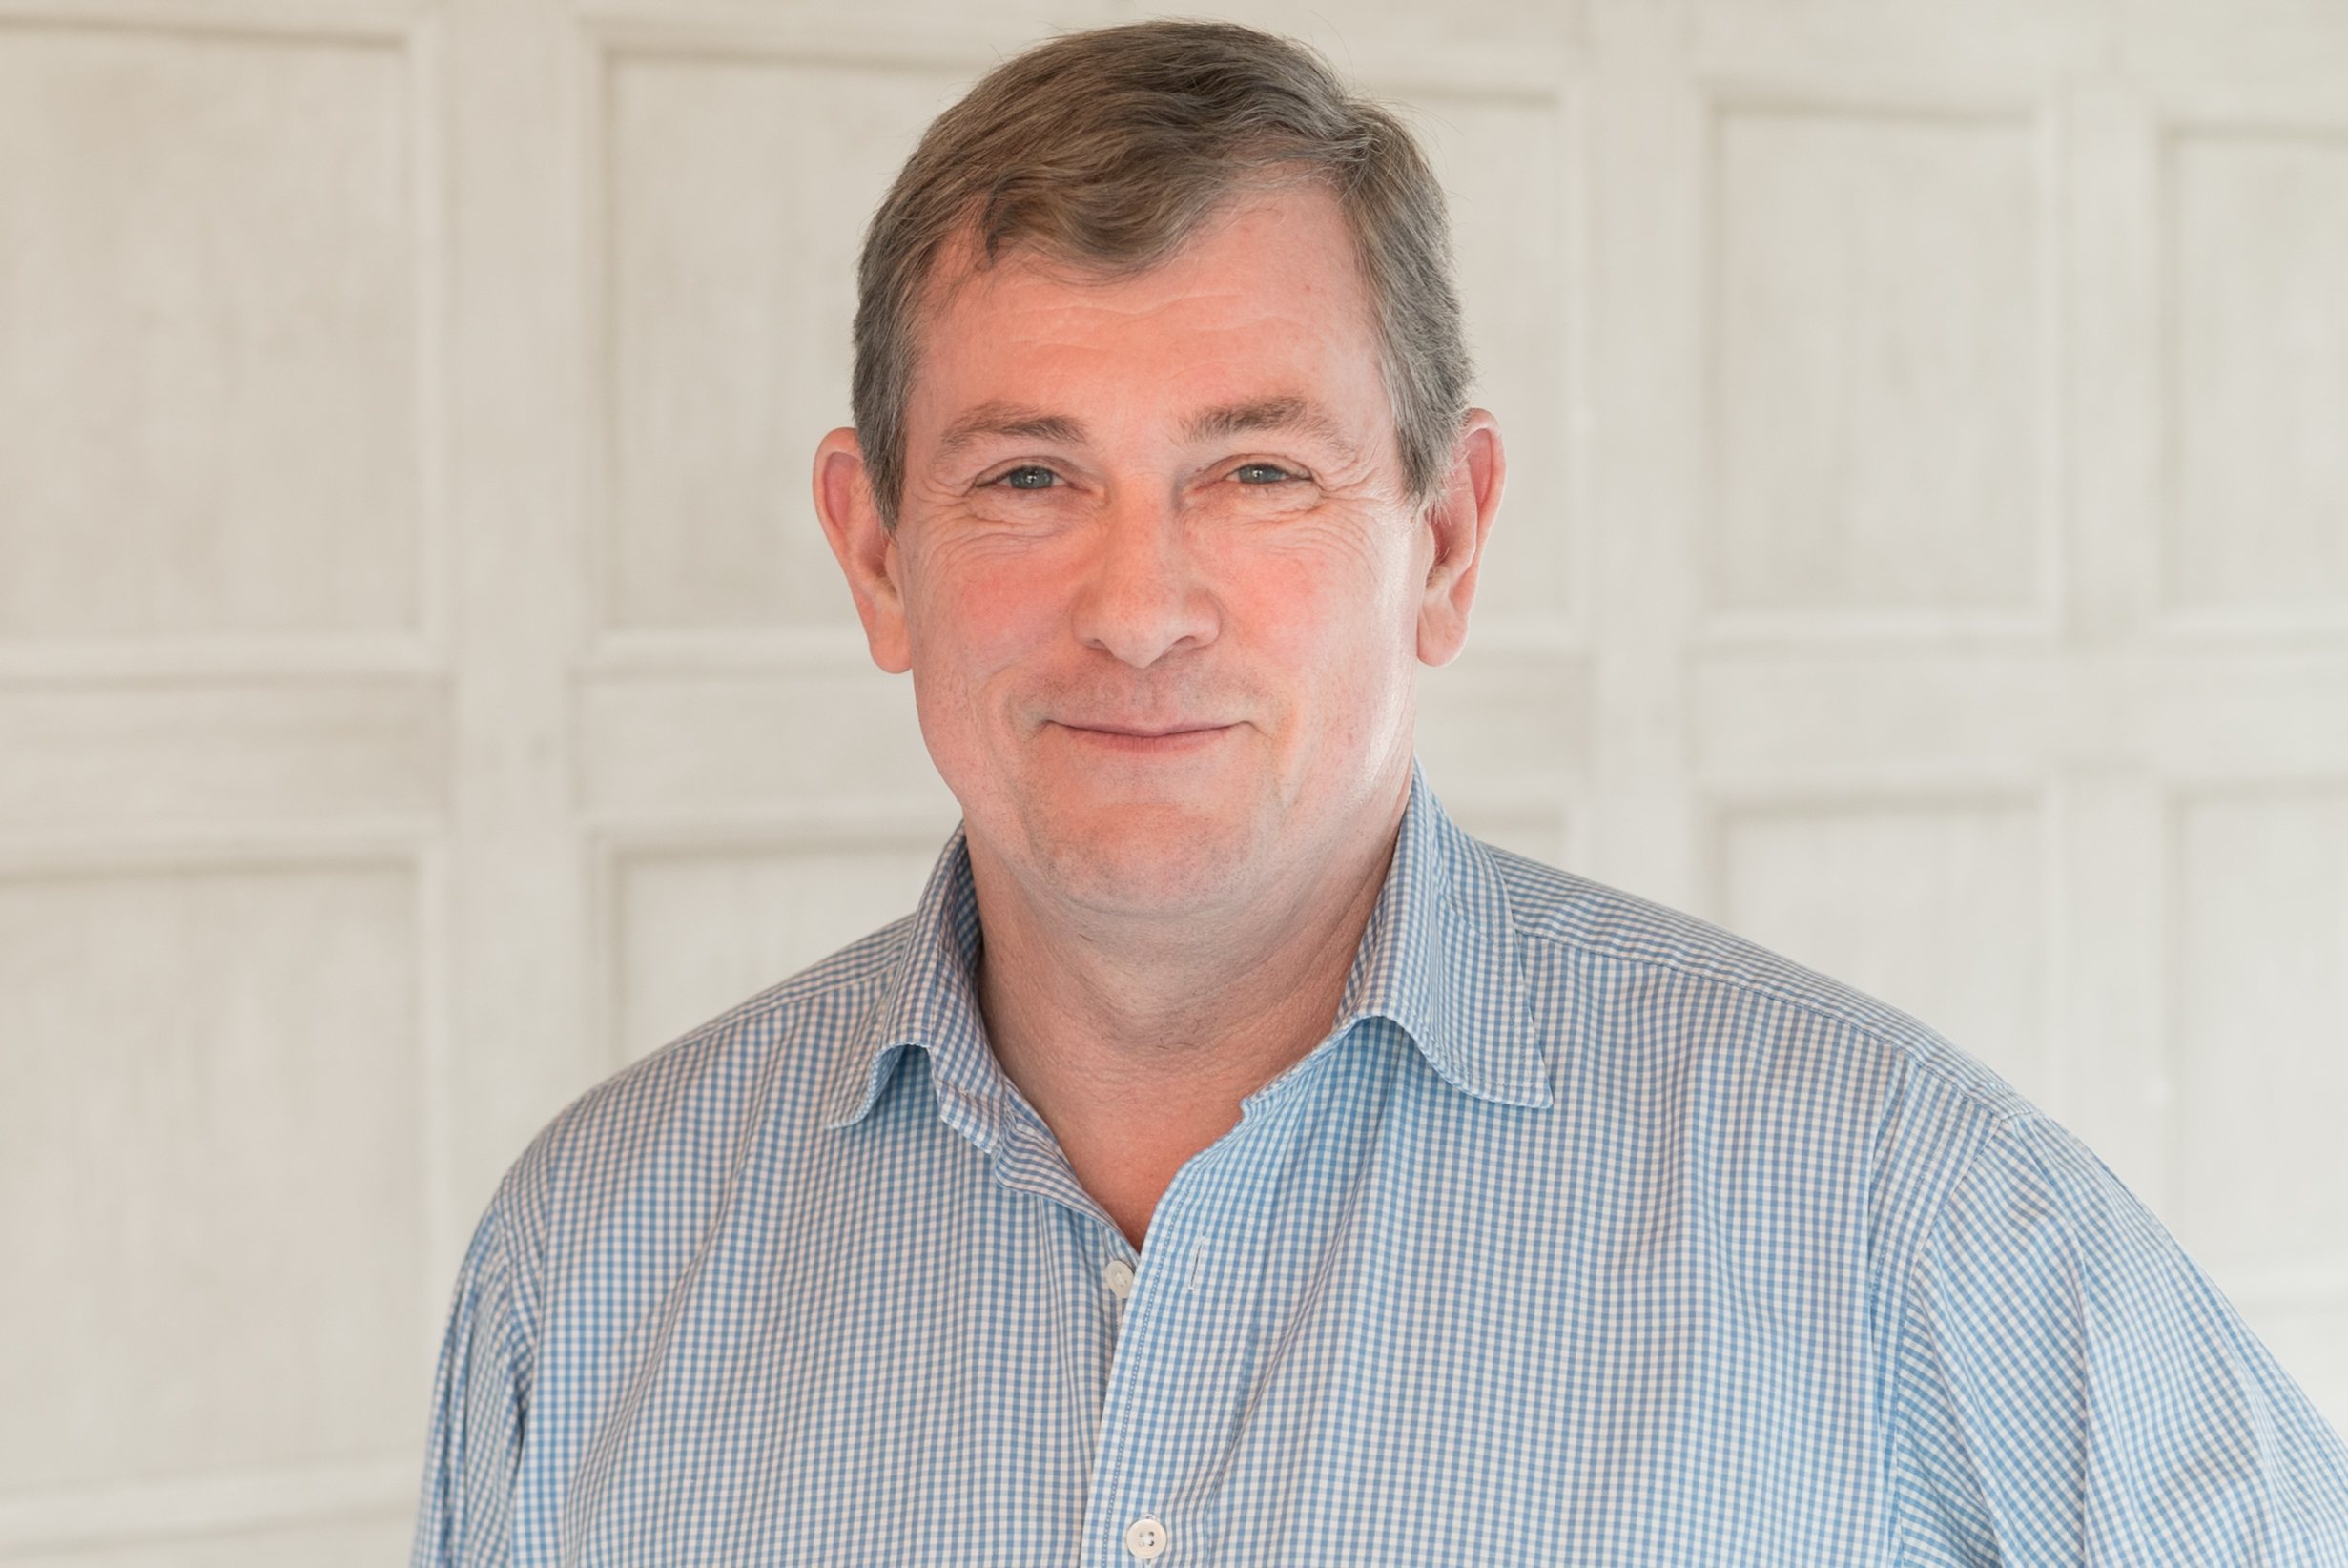 Paul Ellis - CTO, Executive Chairman & Co-founder